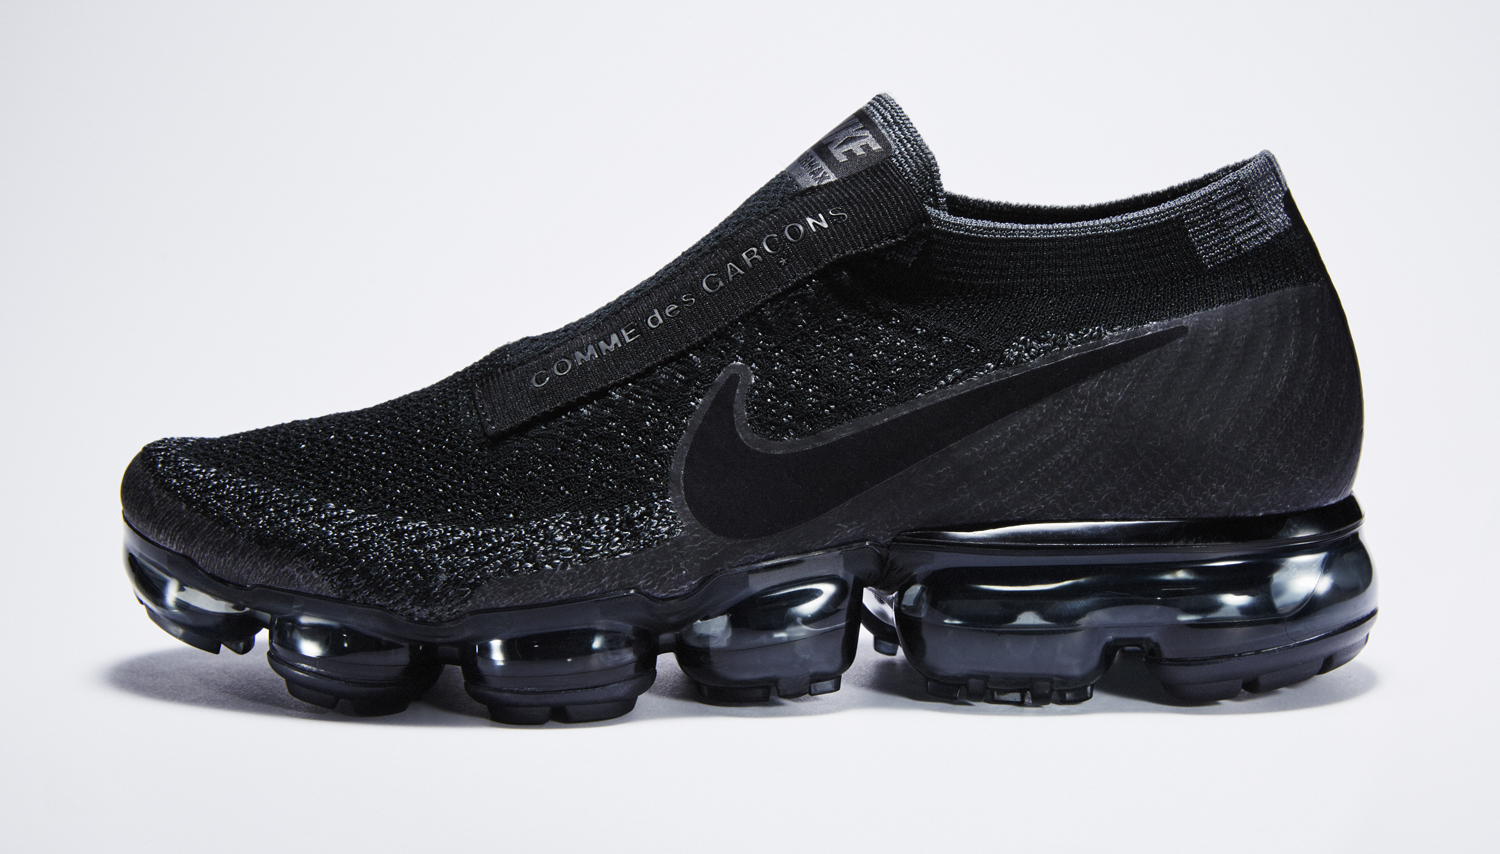 83e724efe01 Image via Nike Black Nike Air VaporMax Comme des Garcons Profile